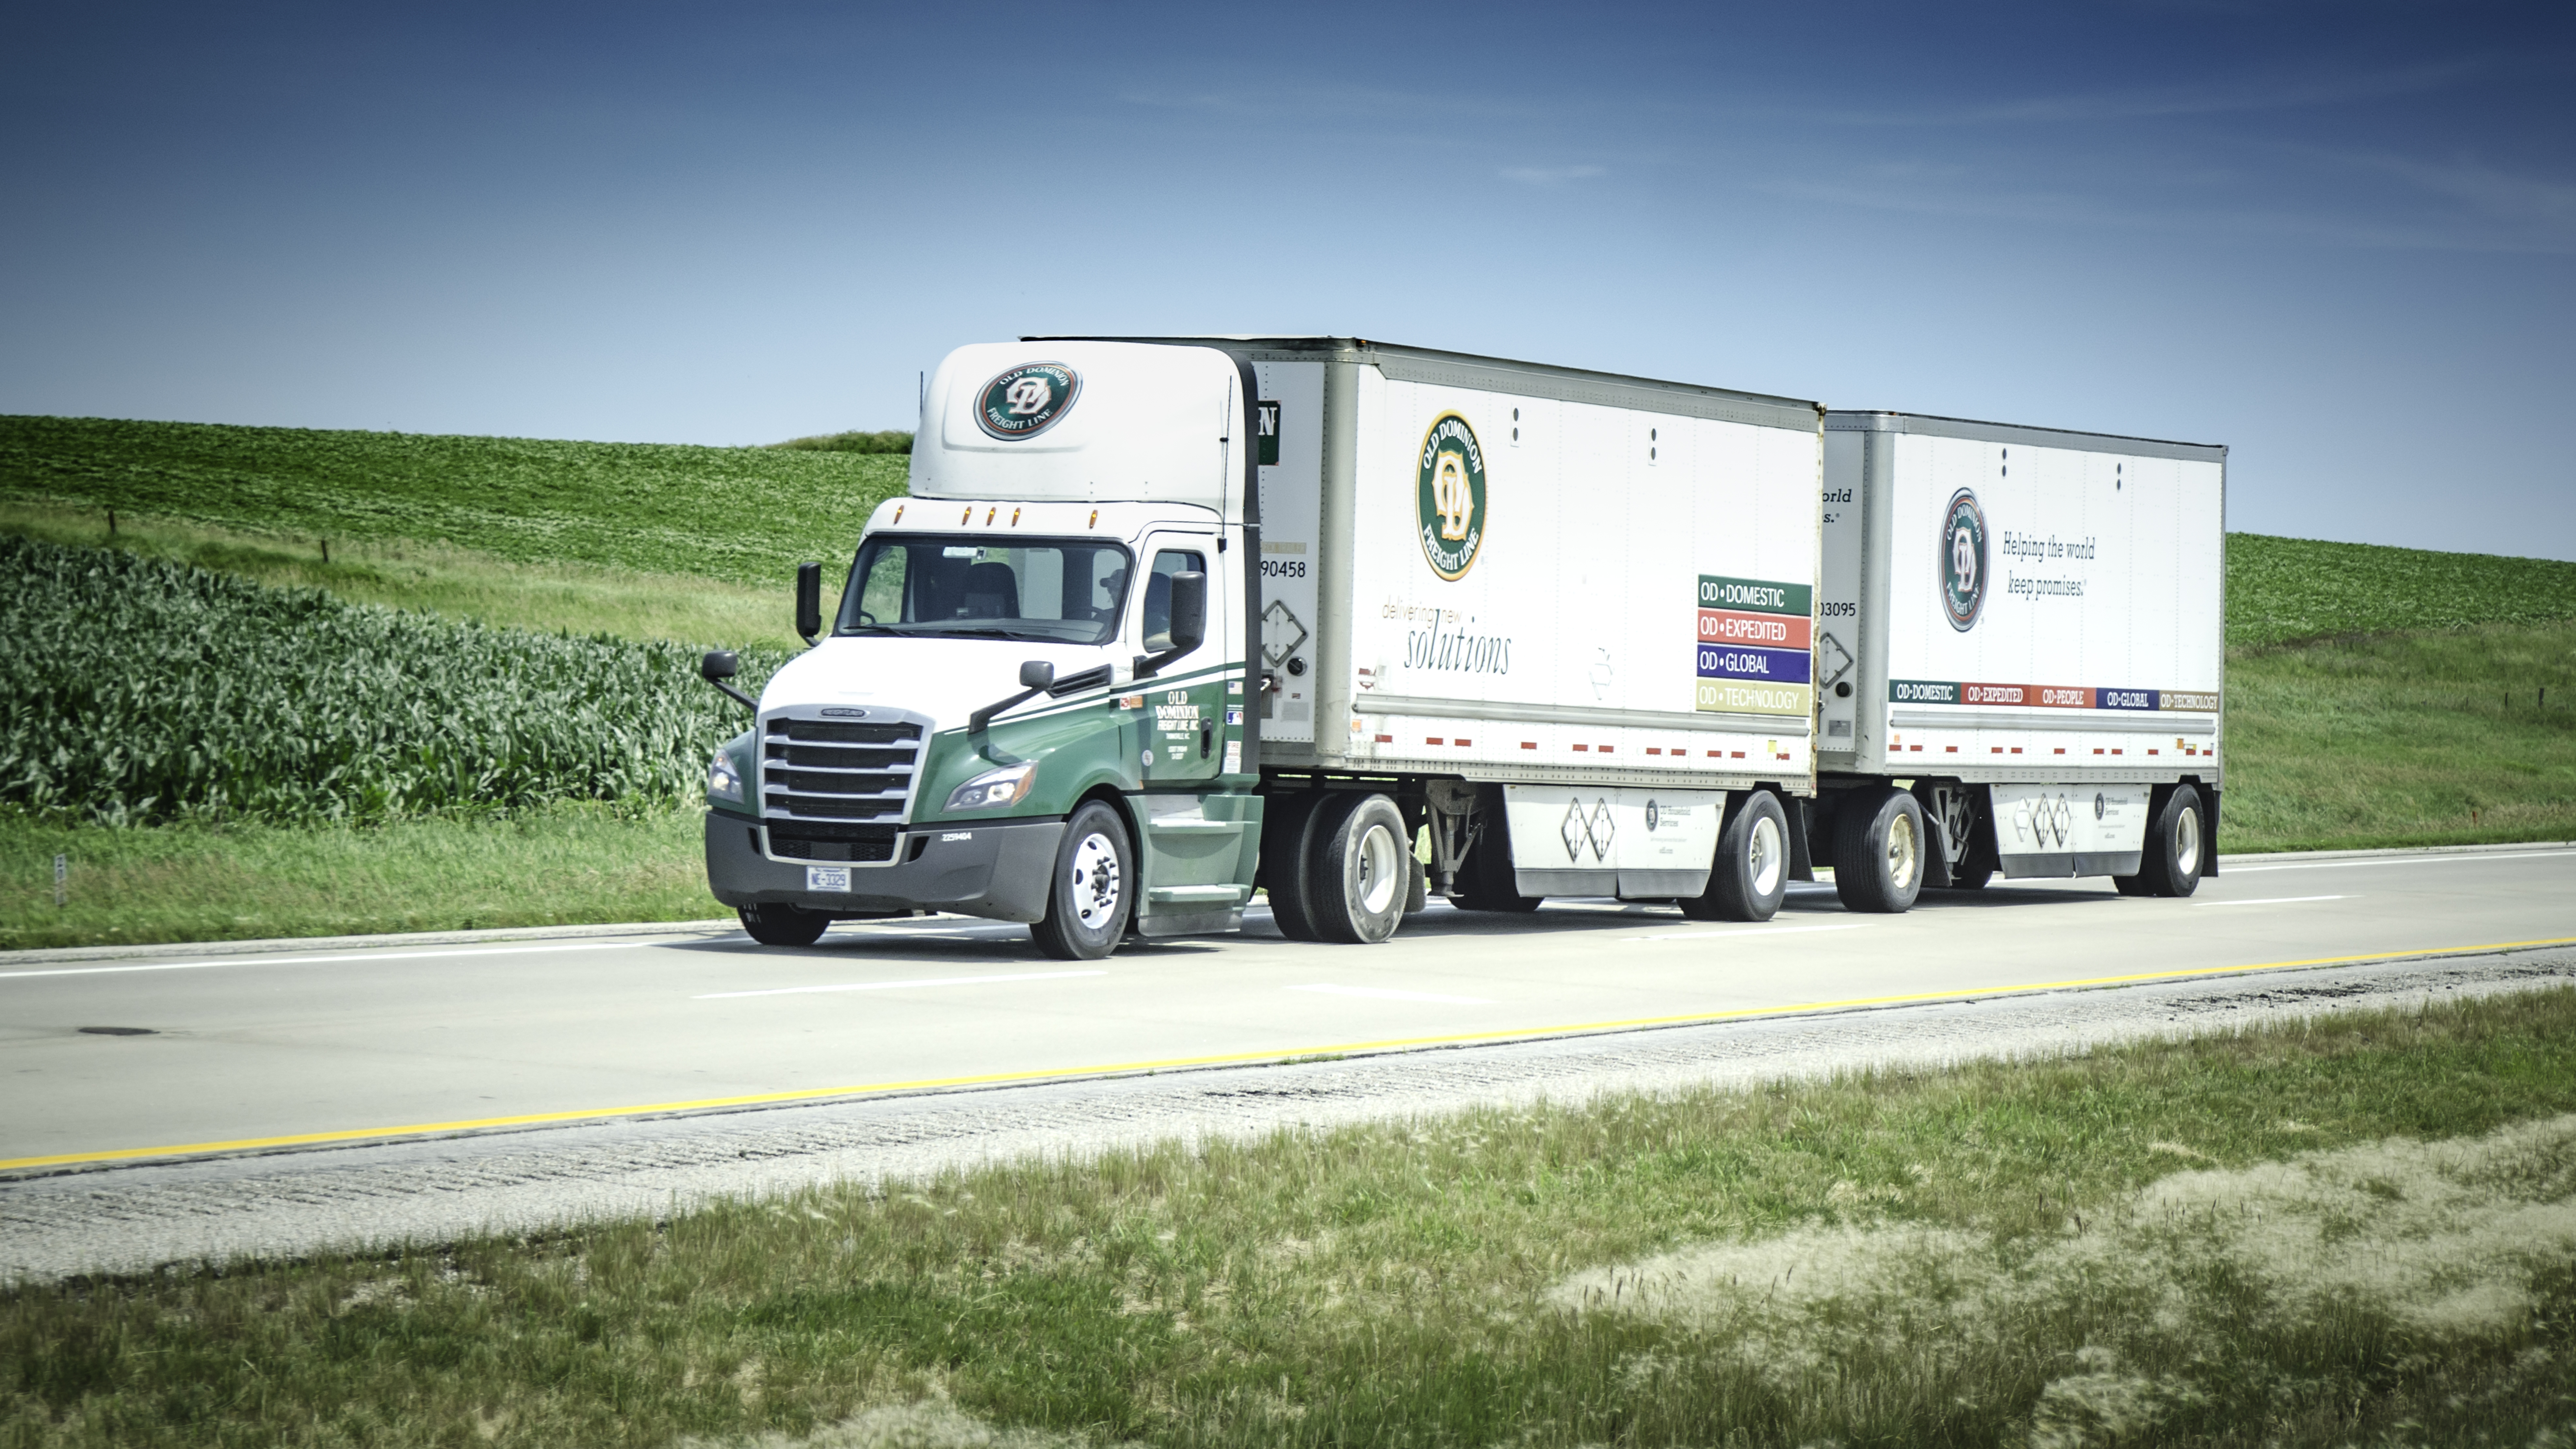 Old Dominion sees investments pay off in Q2